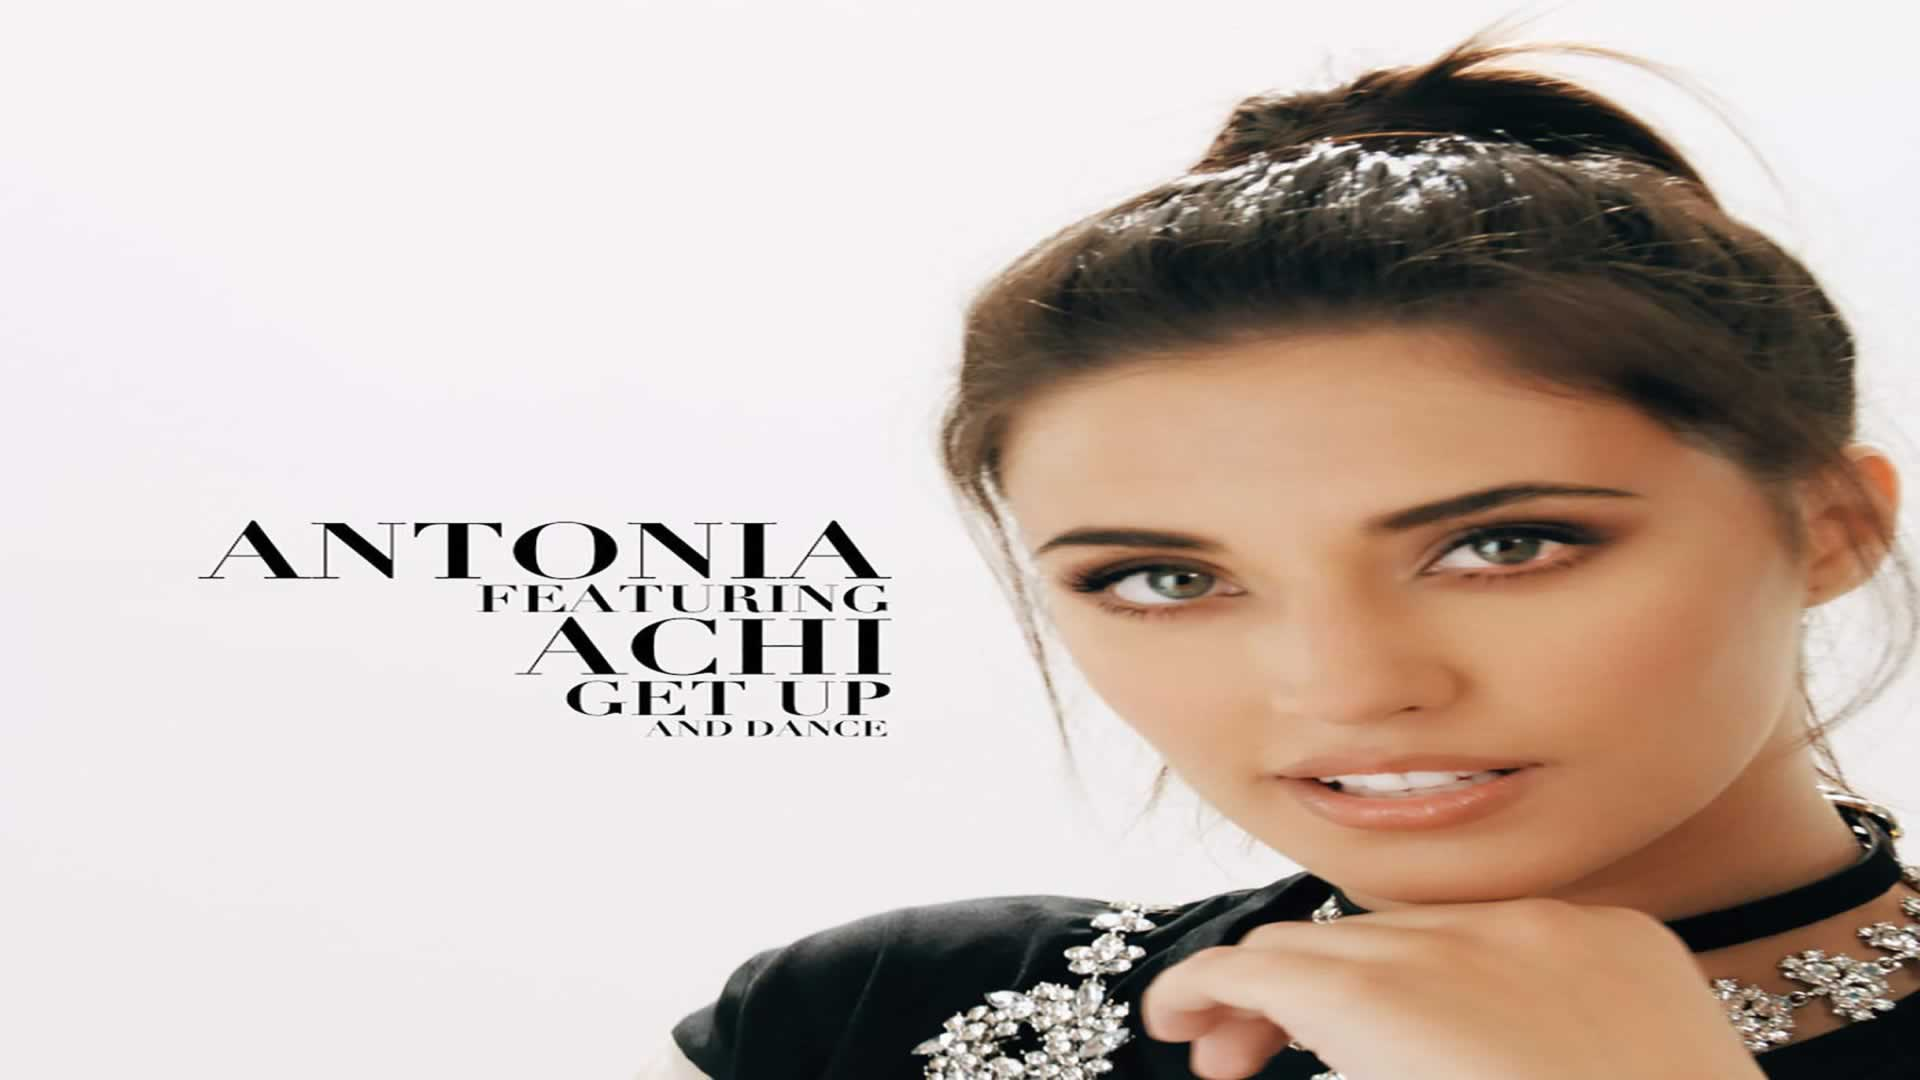 ANTONIA feat. Achi - Get Up And Dance